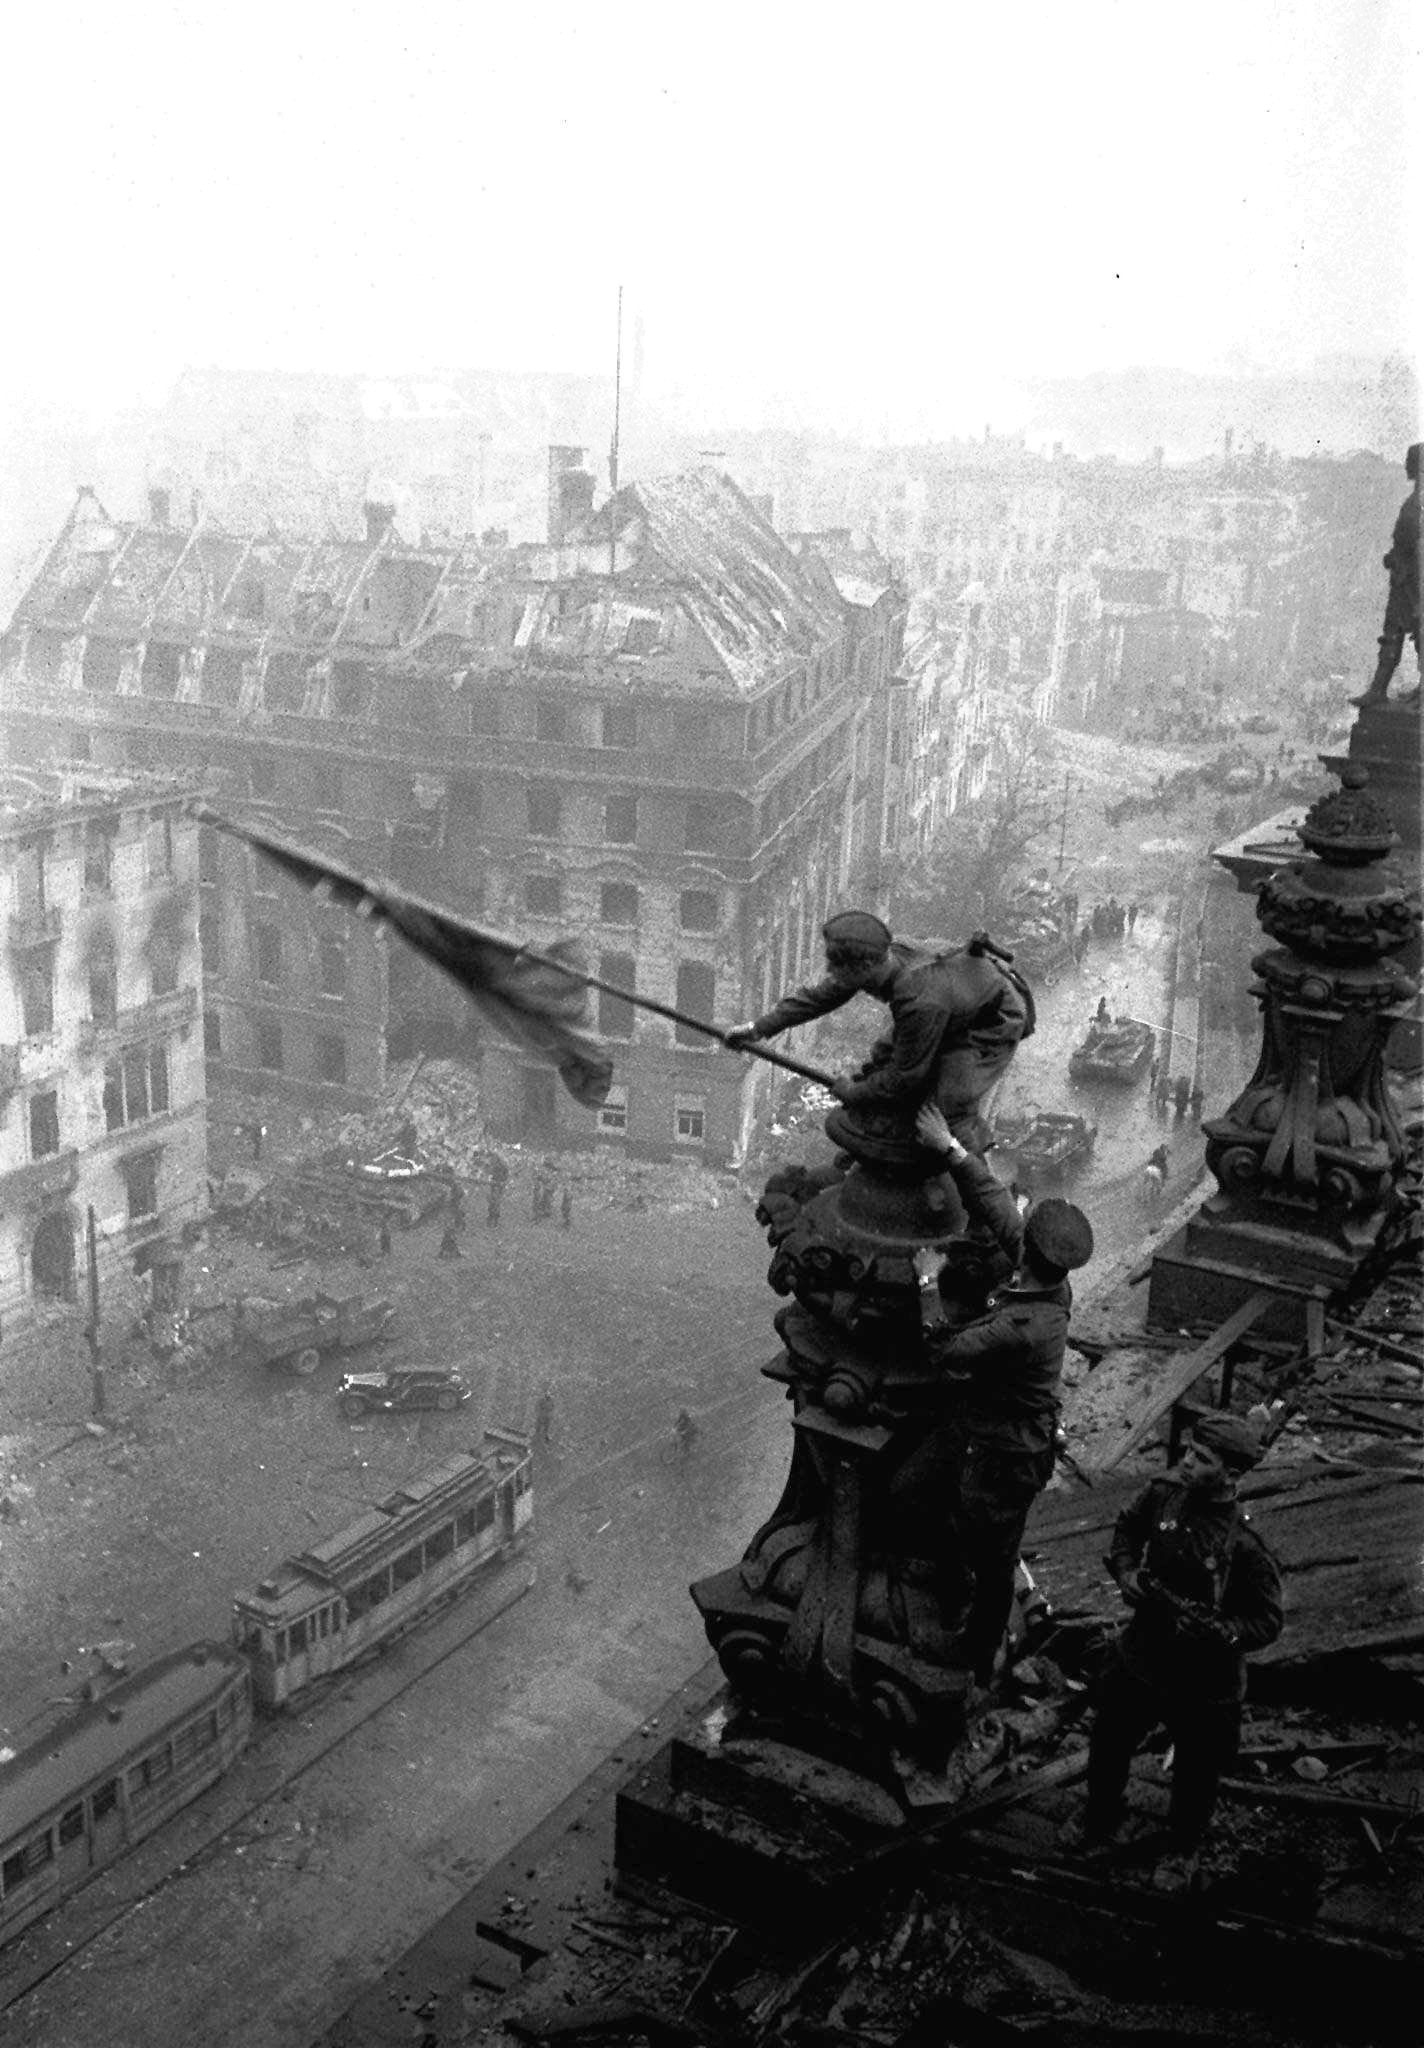 In this May 2, 1945 file photo, Soviet soldiers hoist the red flag over the Reichstag in Berlin. It's one of the iconic images of World War II: Soviet soldiers hoisting a red flag on top of the Reichstag after the fall of Berlin. What most people don't realize, however, is that the photograph isn't capturing the historical moment. Yevgeni Khaldei staged the scene on May 2, 1945 _ three days after the Soviets had captured the key seat of Nazi power.